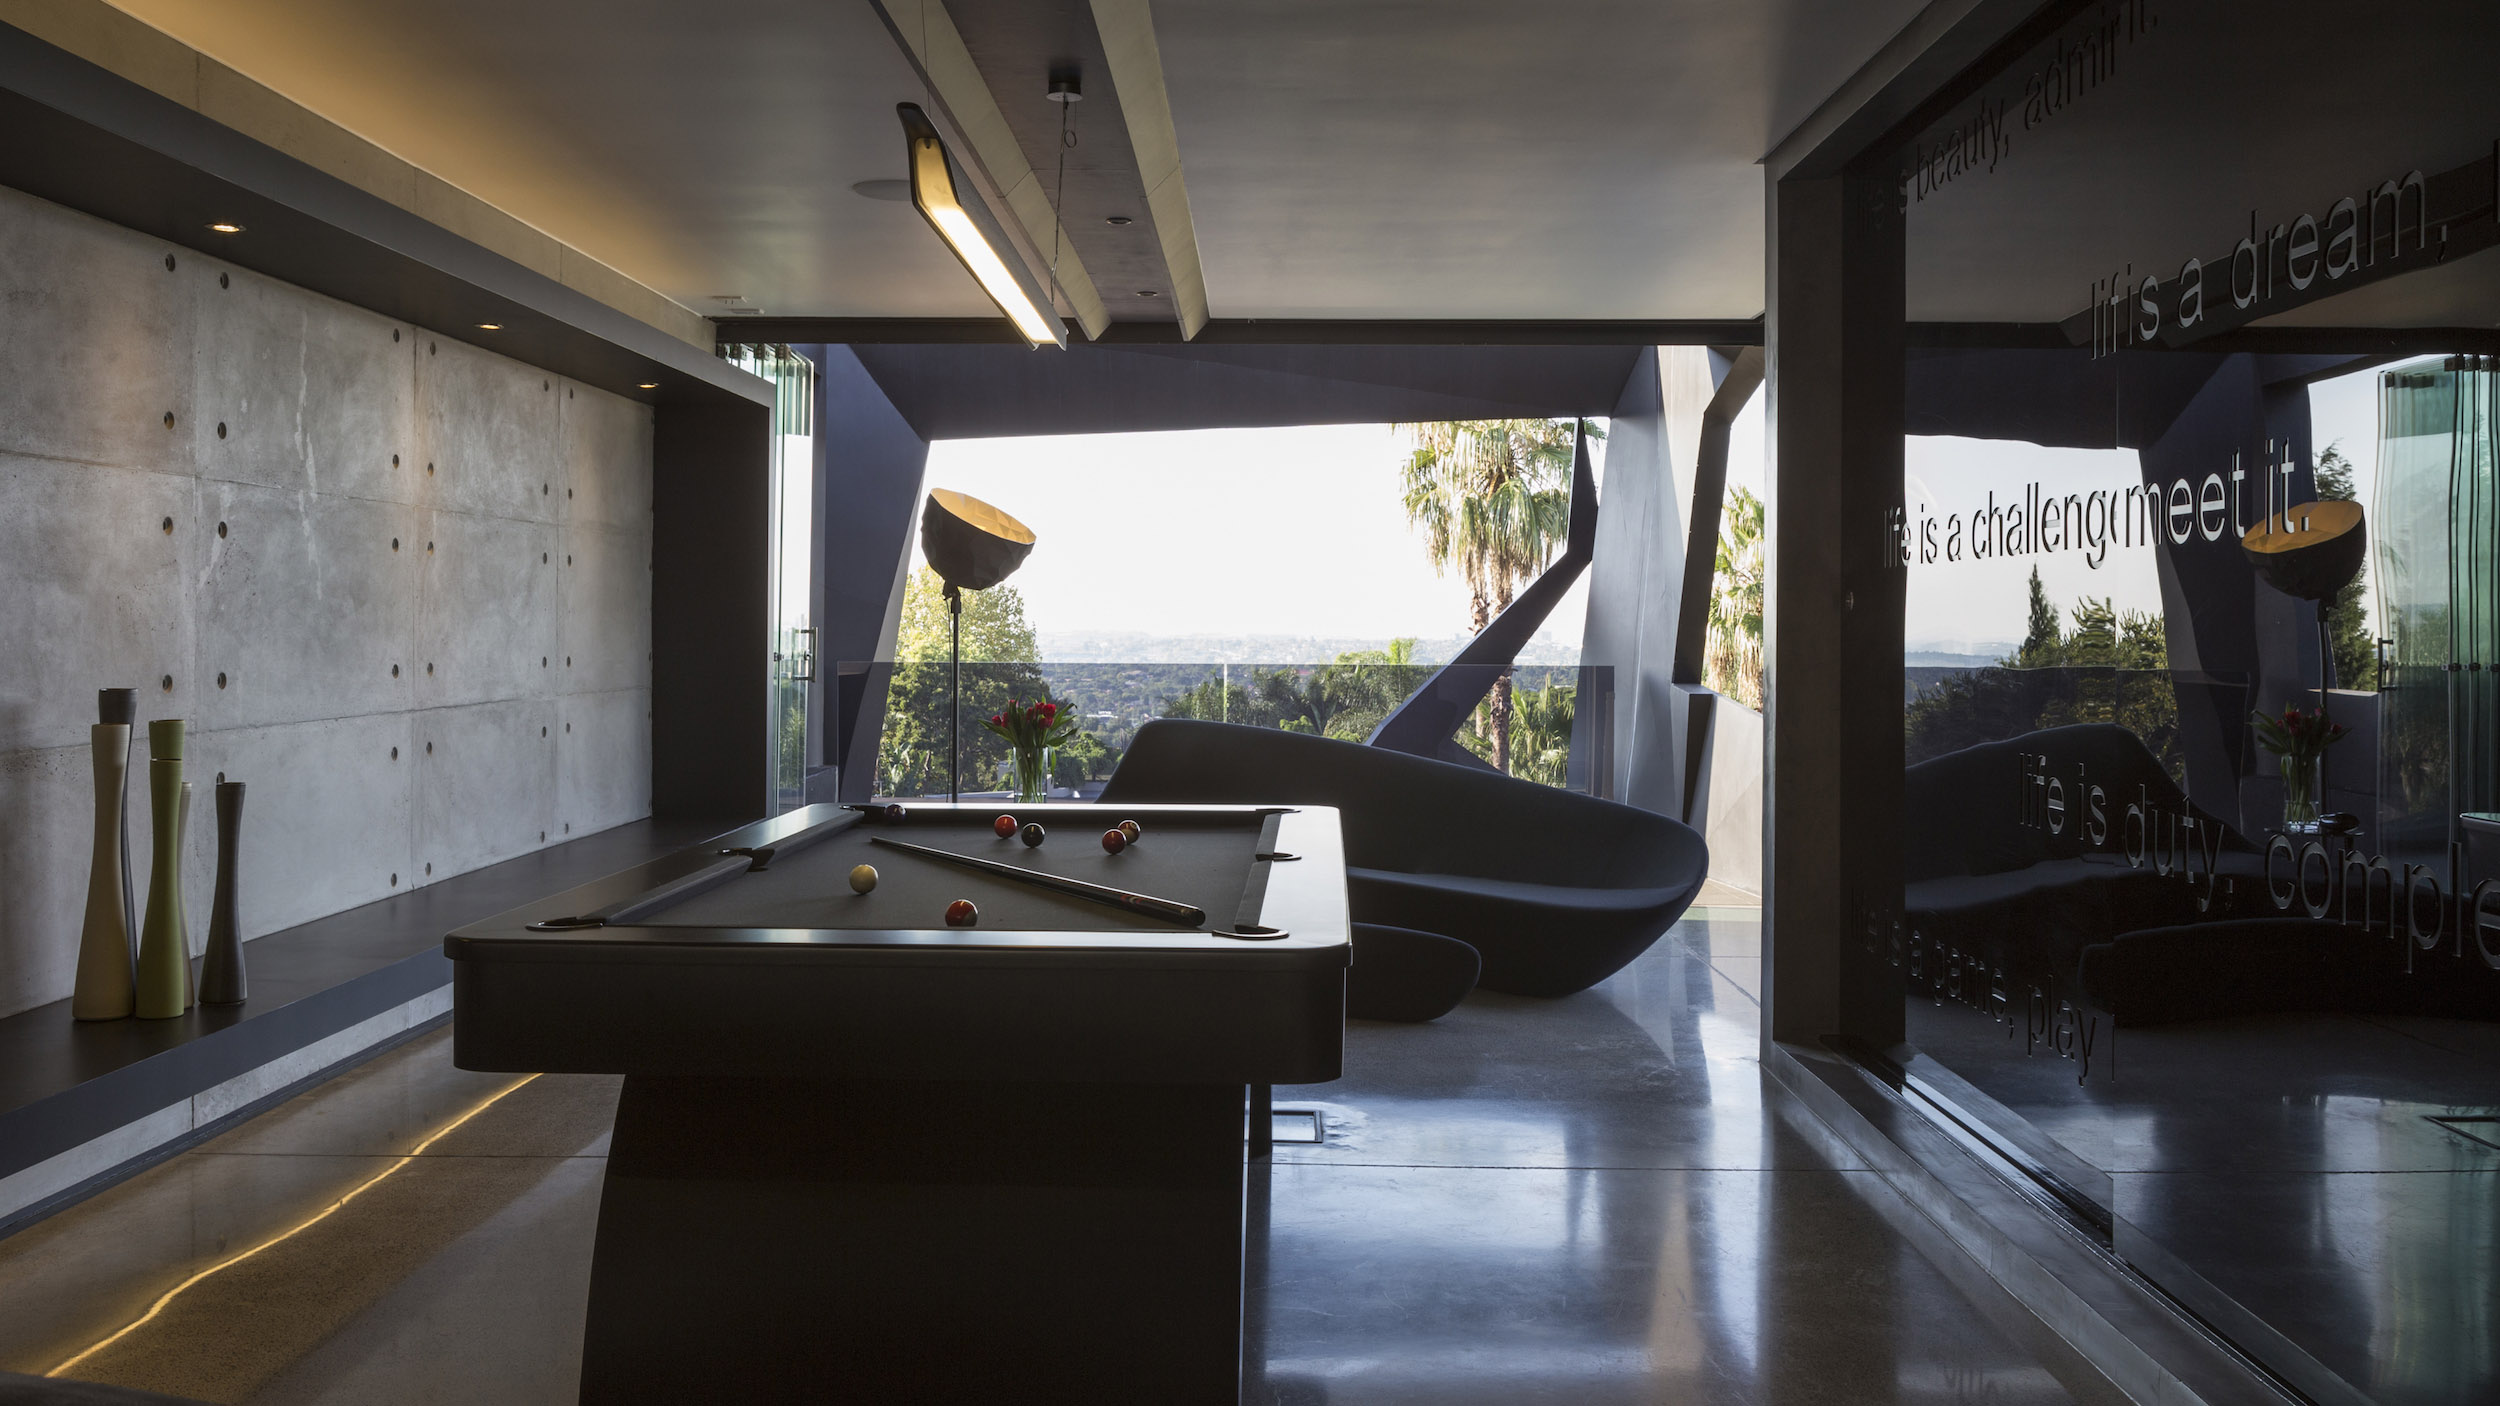 Kloof Road Masterpiece House in Johannesburg by Nico van der Meulen Architects-33